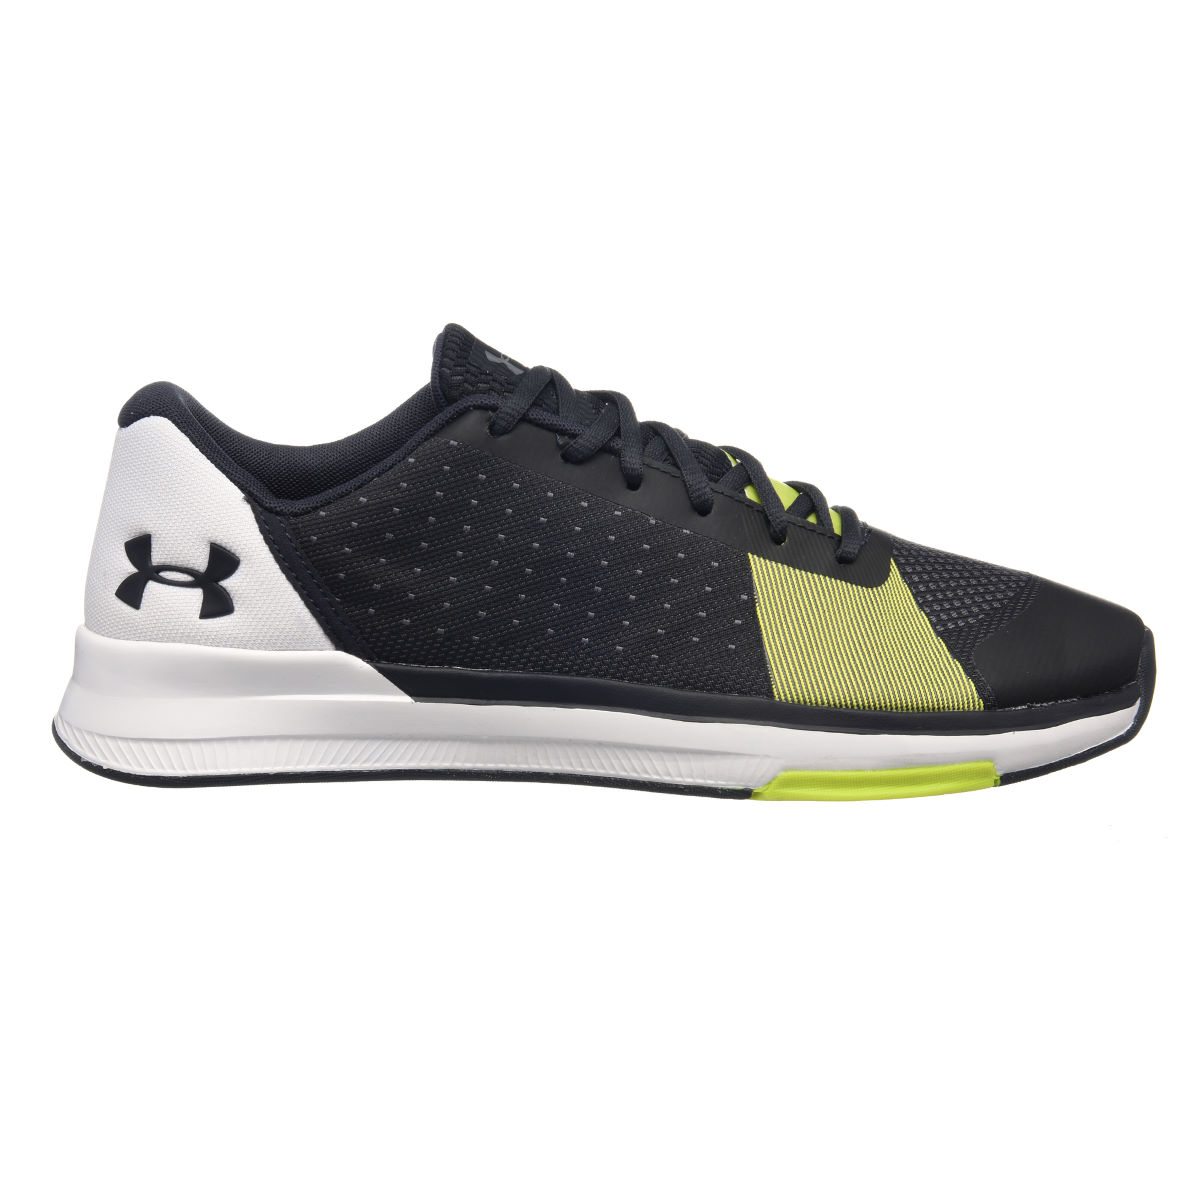 Chaussures Under Armour Showstopper - UK 13 ANTHRACITE